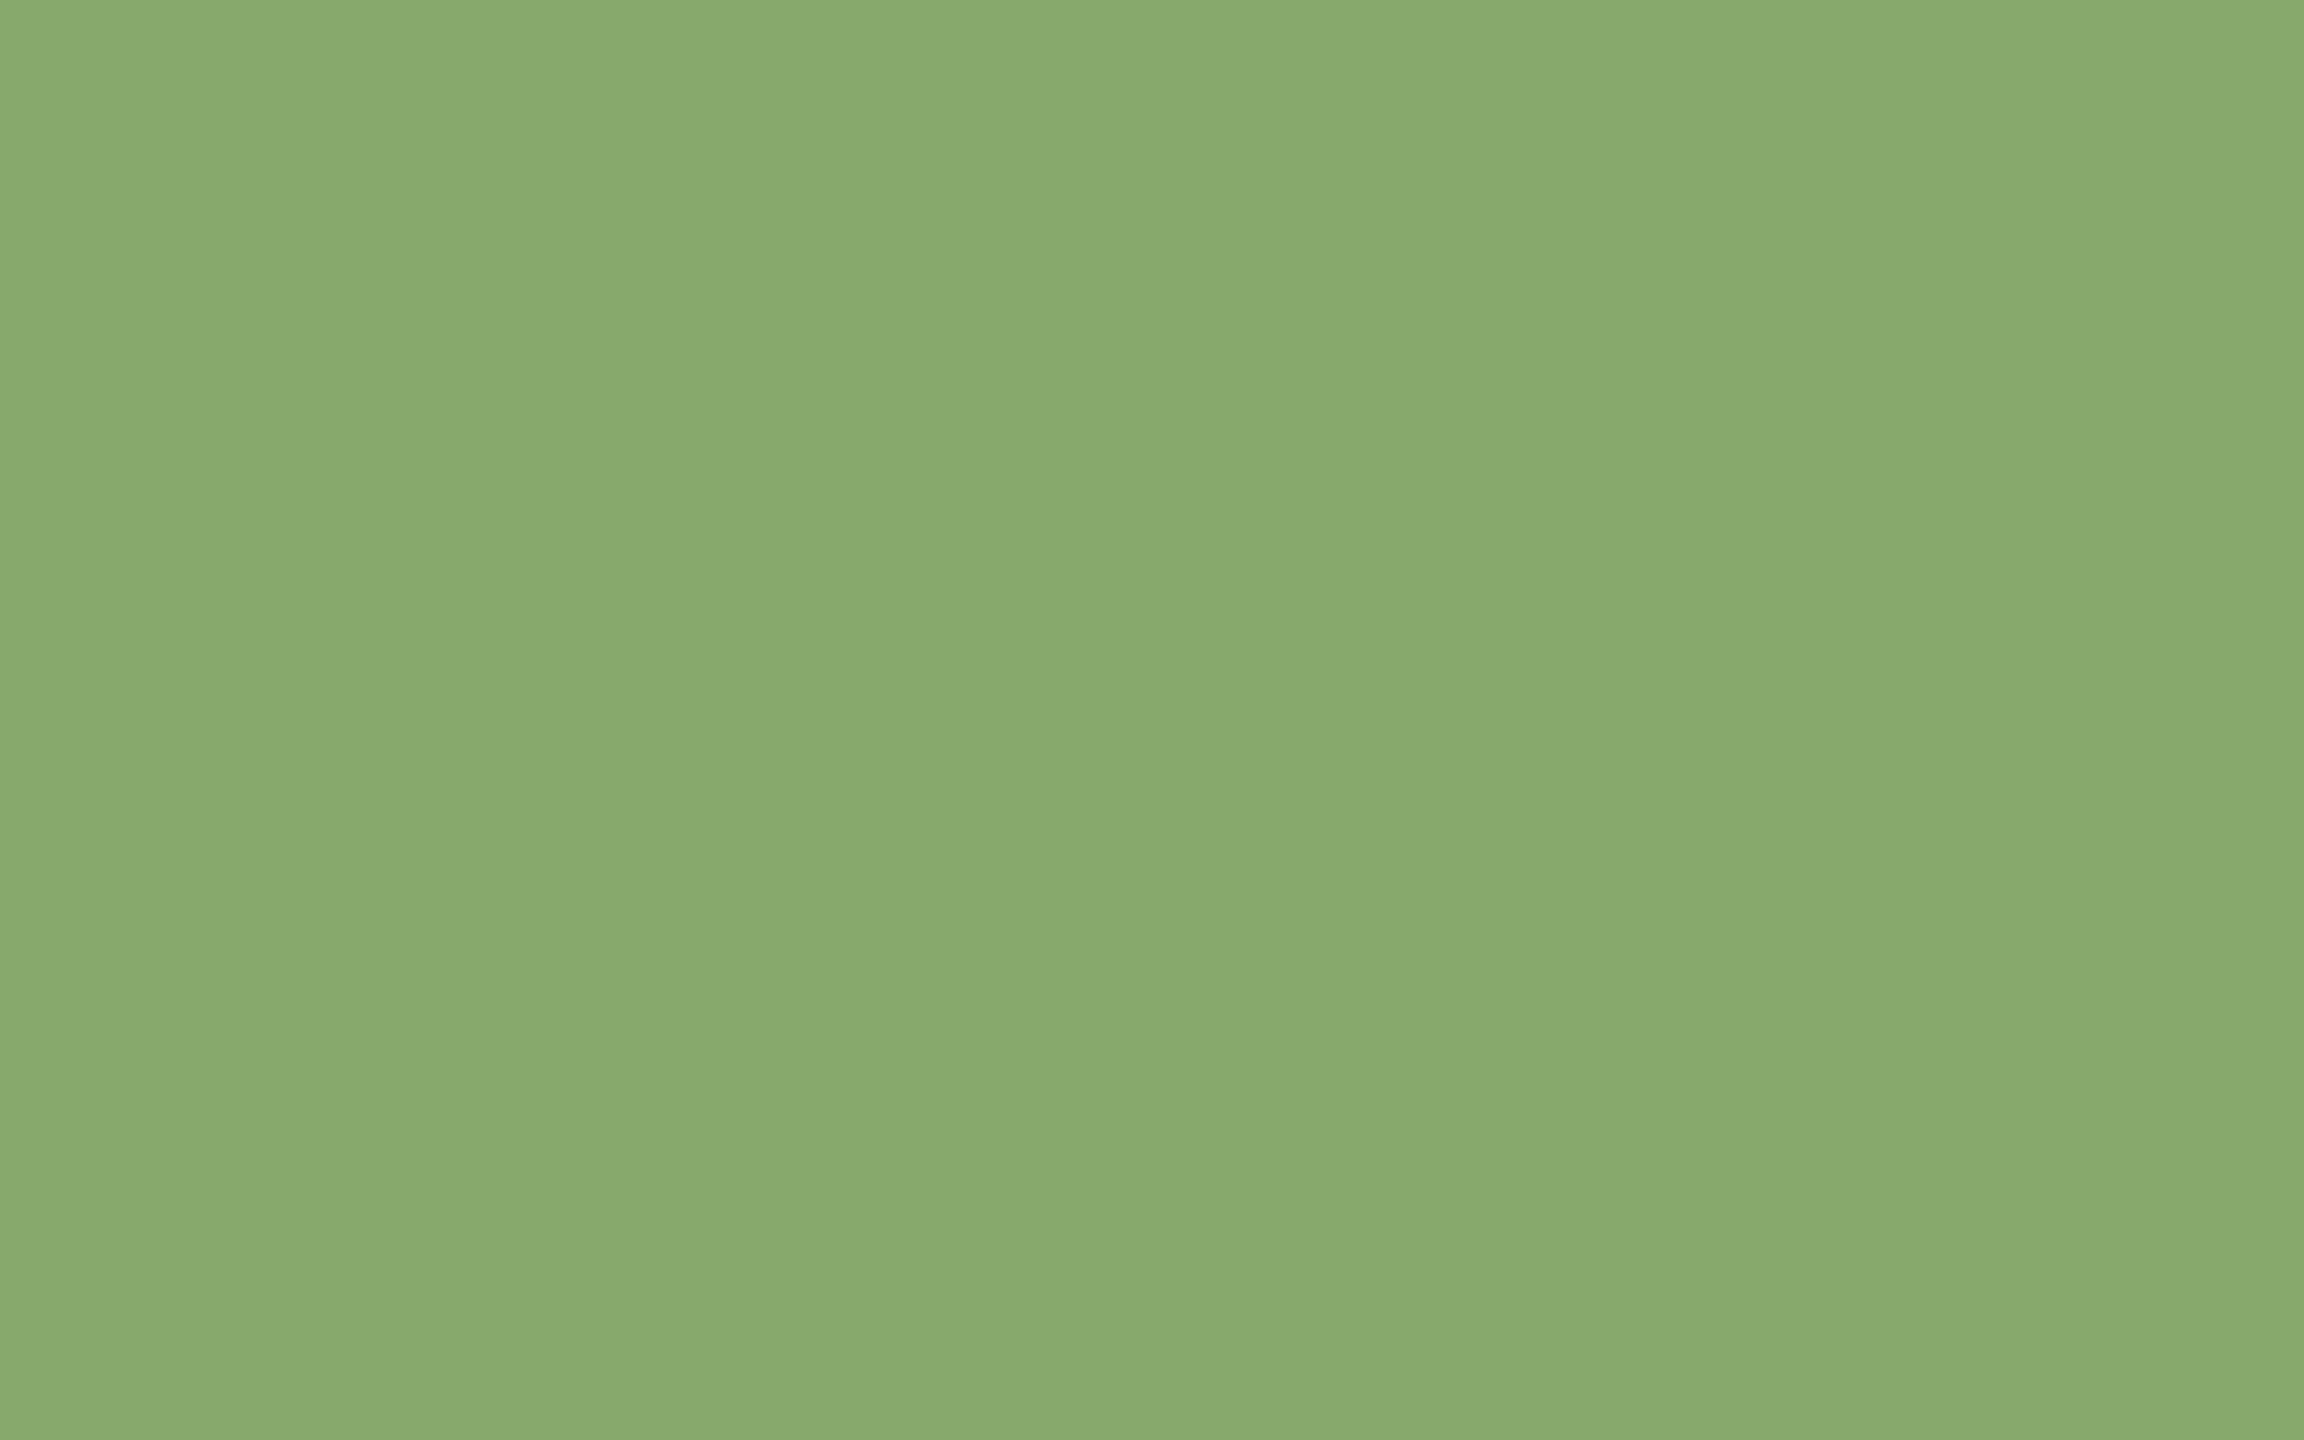 2304x1440 Asparagus Solid Color Background